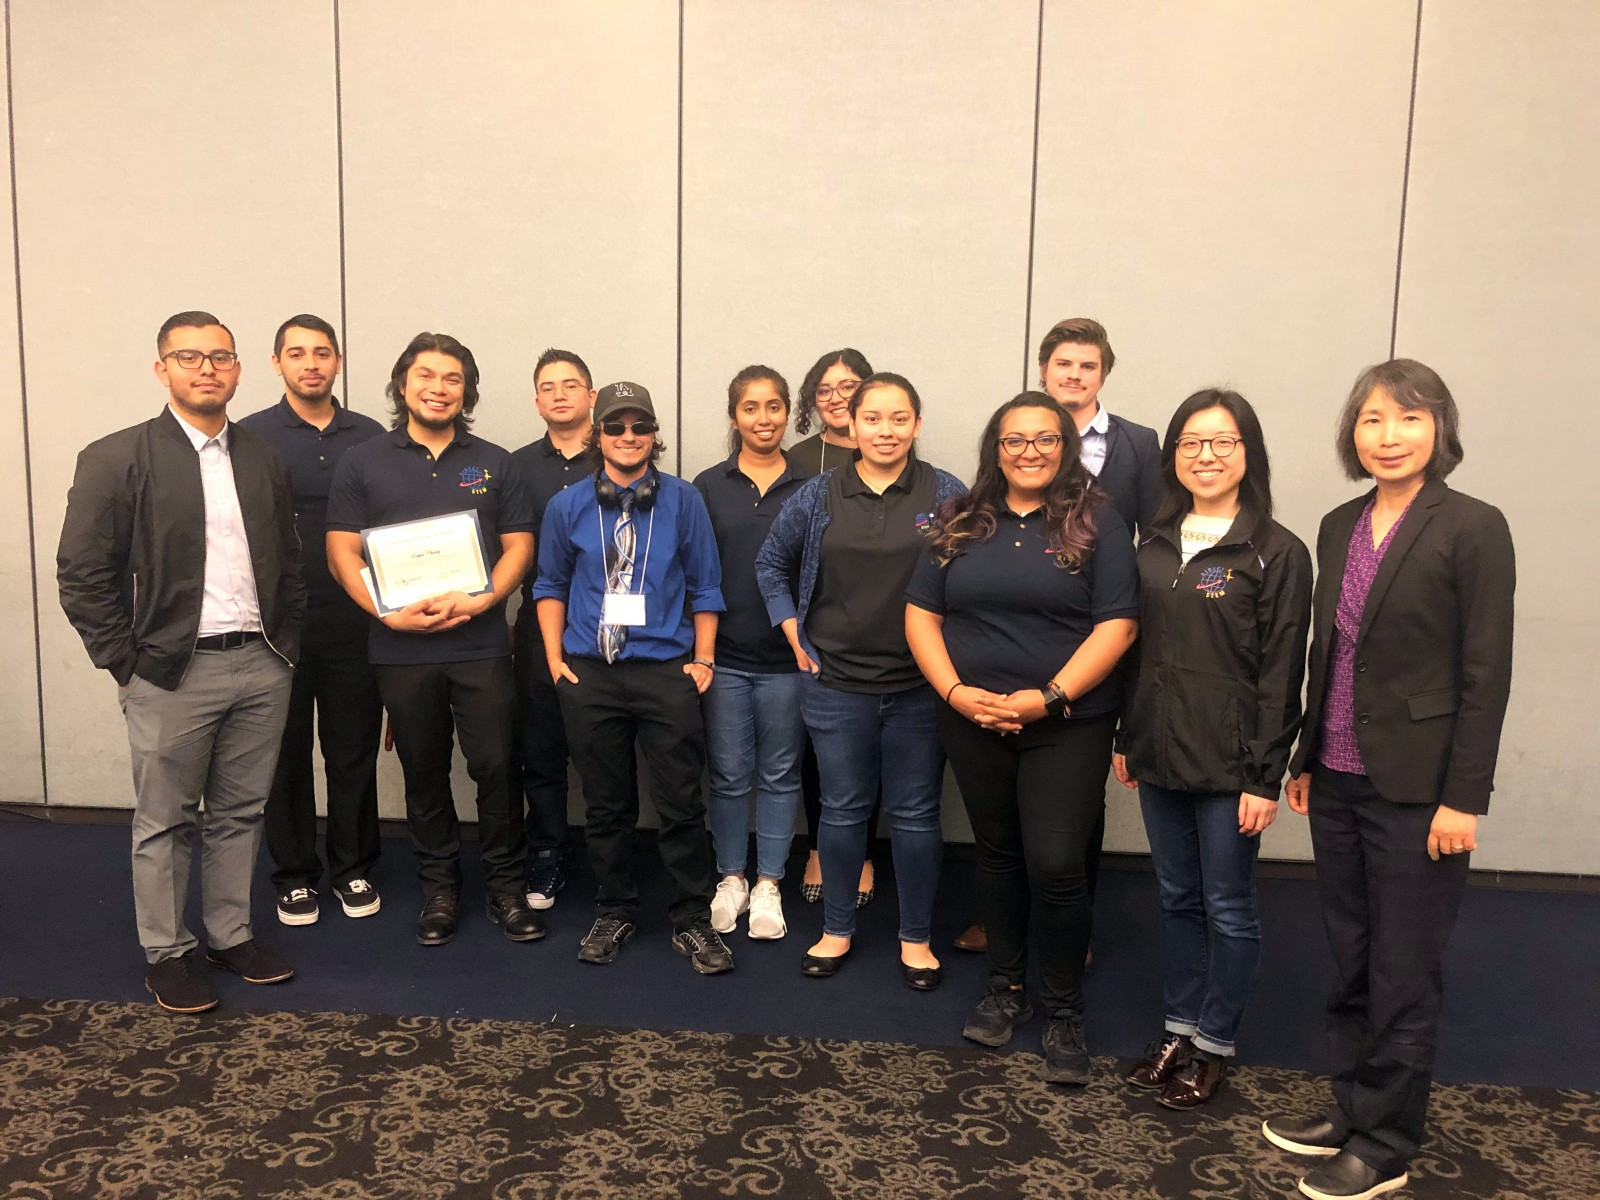 Faculty and students at the 28th Annual Cal State LA Student Symposium on Research, Scholarship, and Creative Activities.